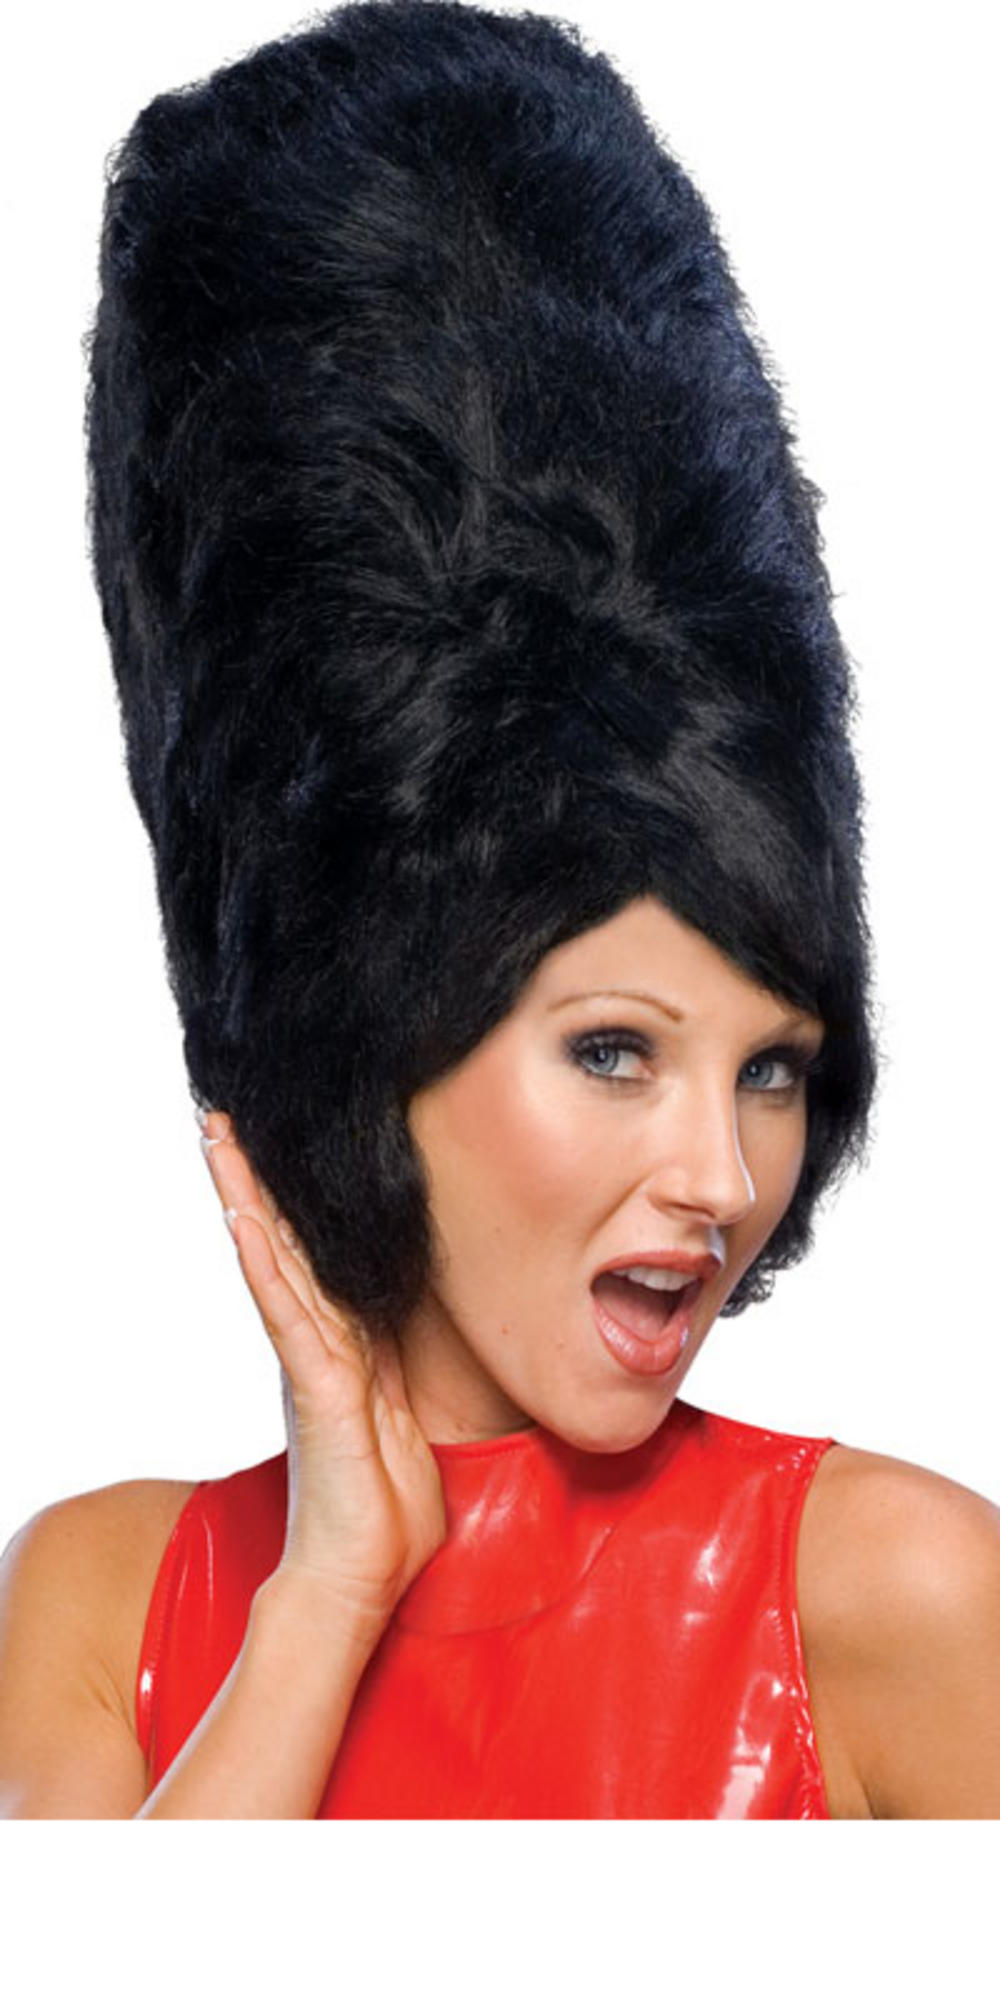 1960s Style Black Beehive Fancy Dress Party Wig Thumbnail 2